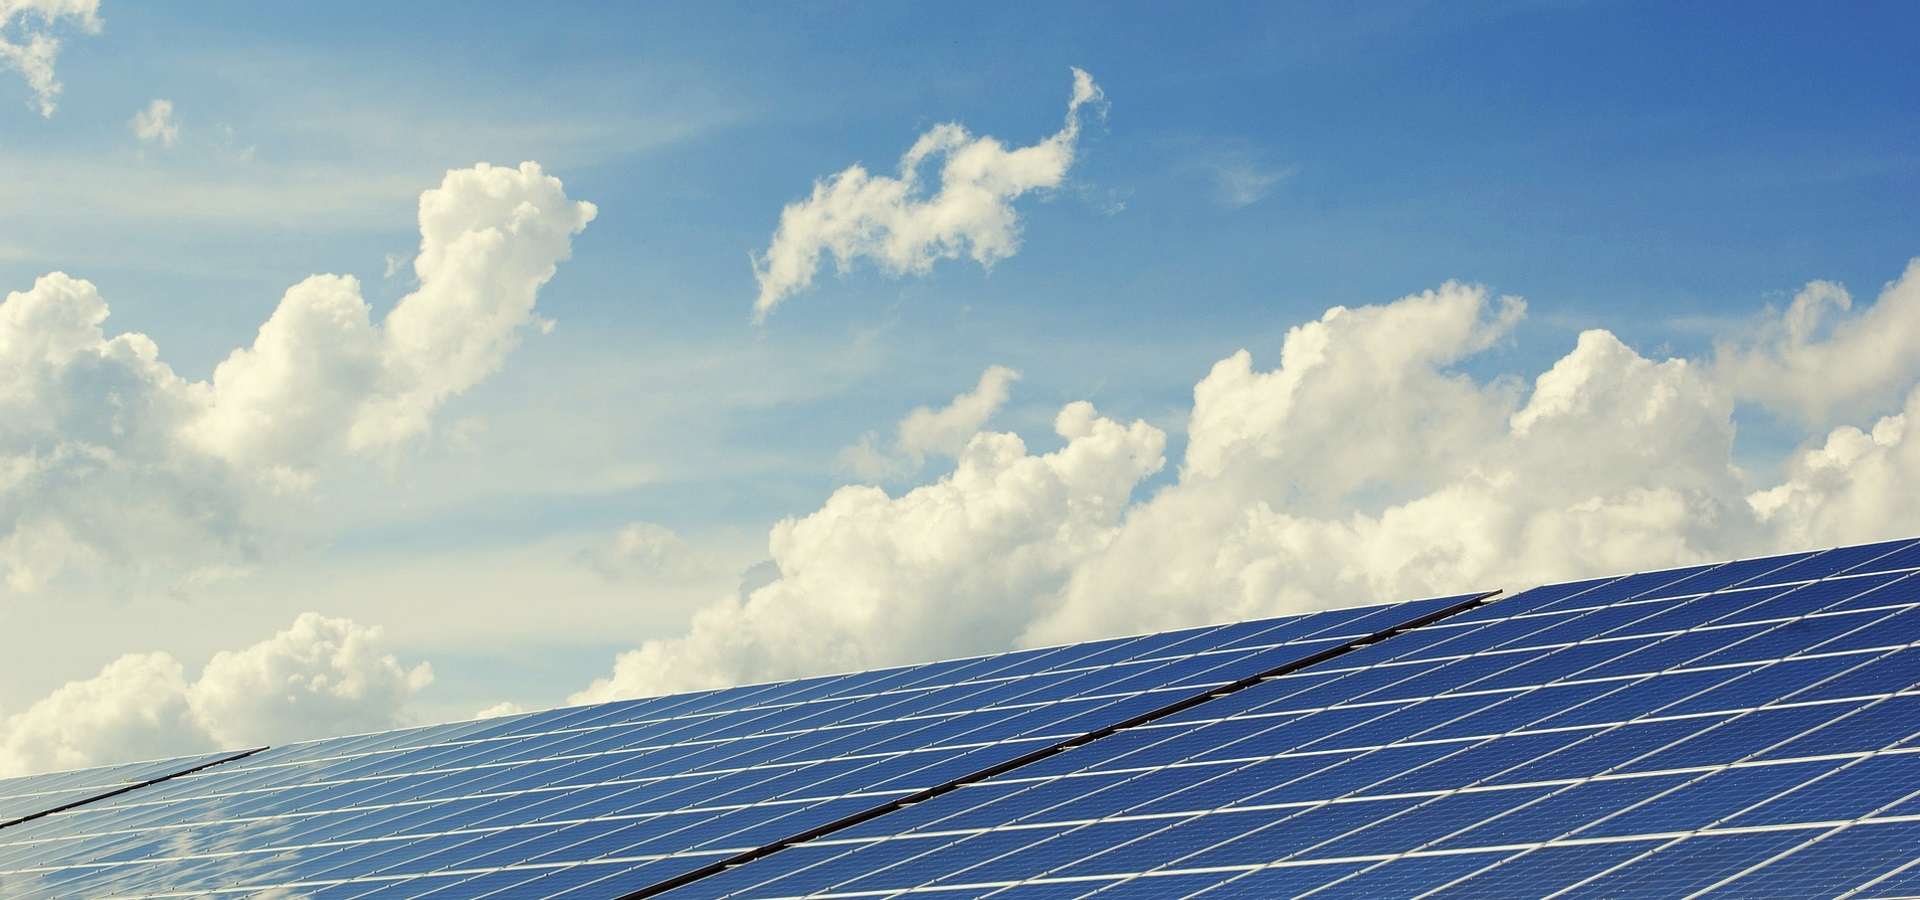 For reliable and sustainable energy